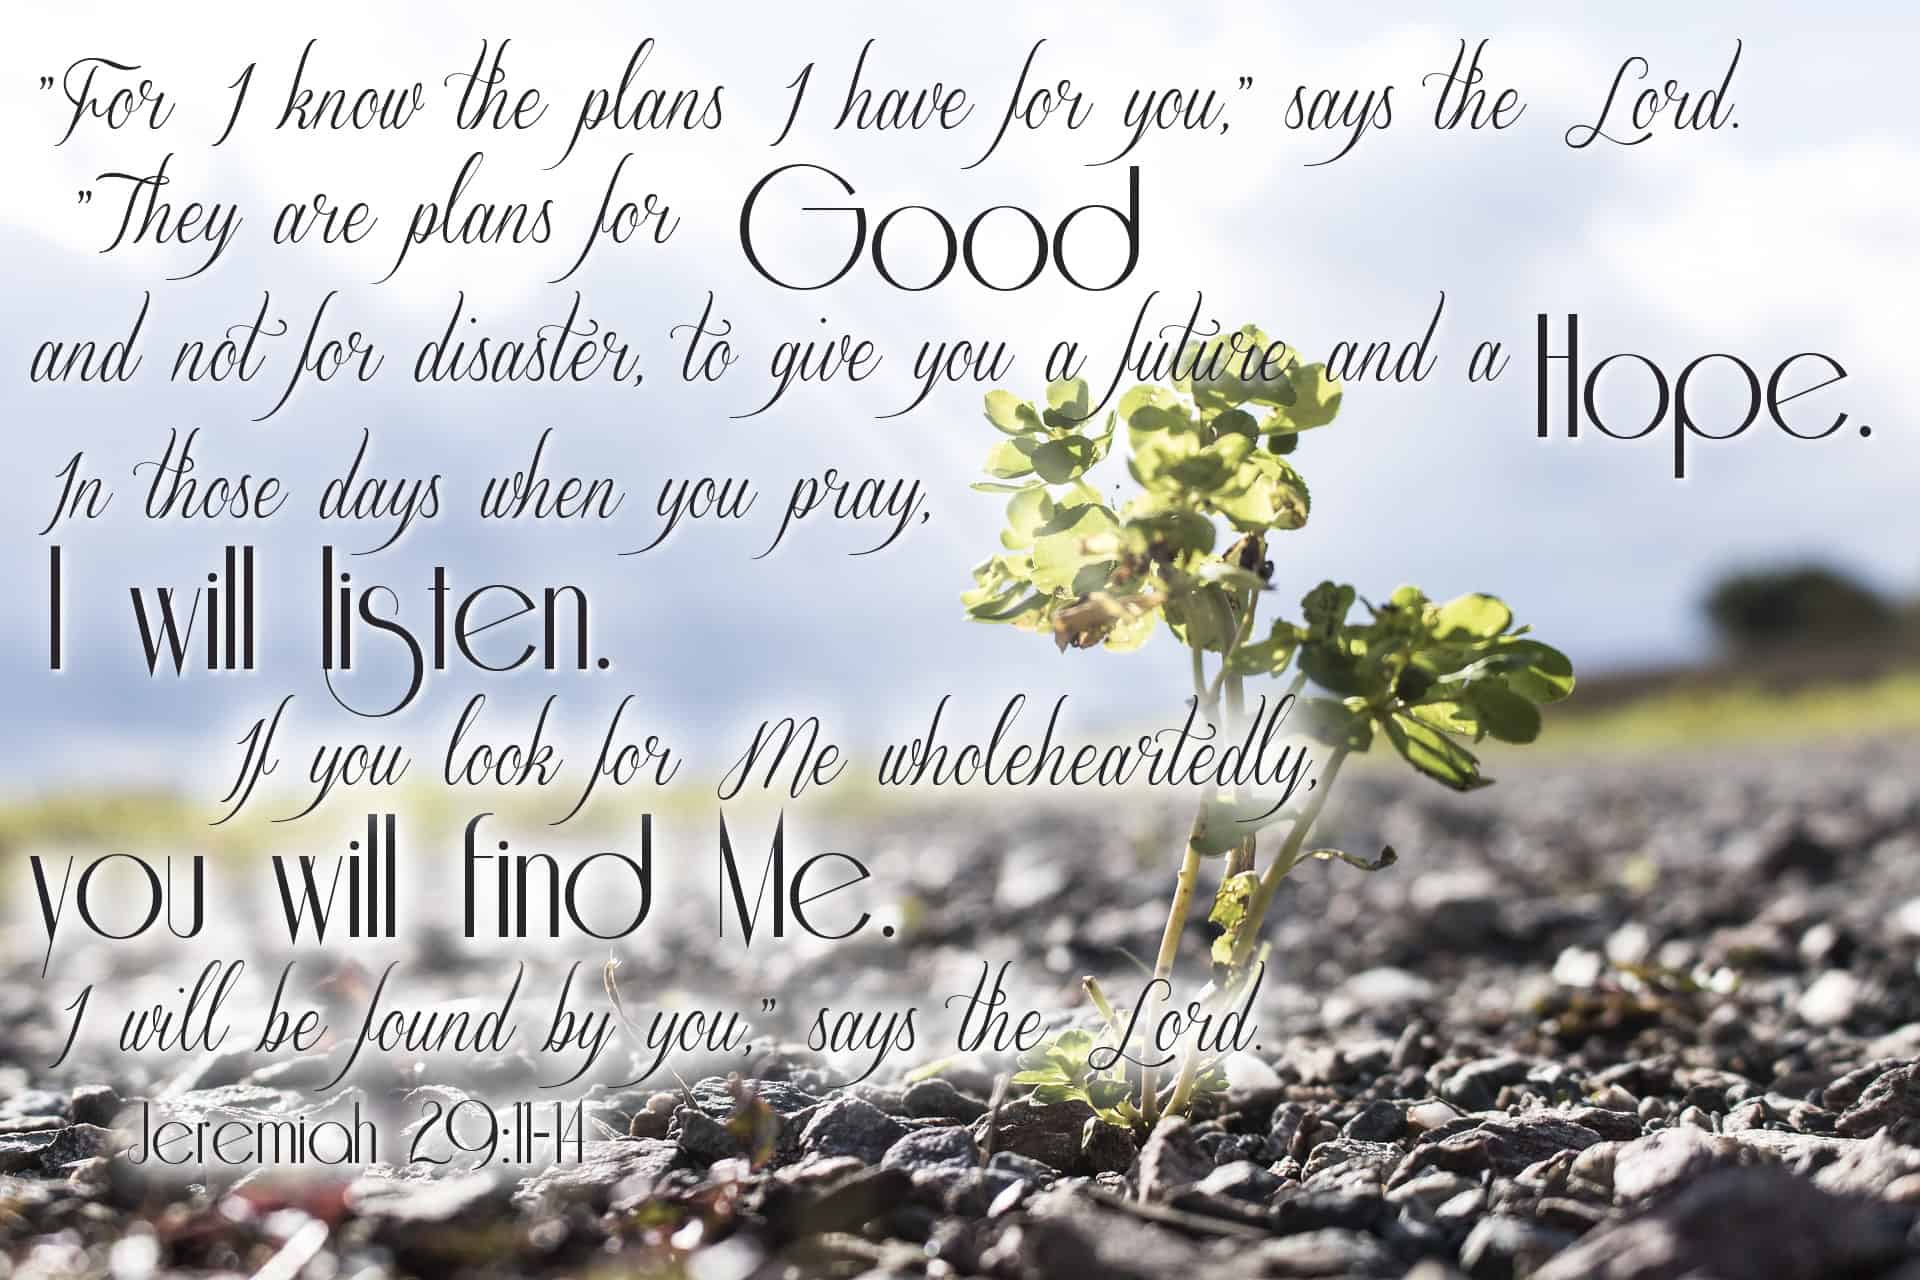 "Jeremiah 29:11-14 – ""For I know the plans I have for you,"" says the Lord. ""They are plans for good and not for disaster, to give you a future and a hope. In those days when you pray, I will listen. If you look for Me wholeheartedly, you will find Me. I will be found by you,"" says the Lord."